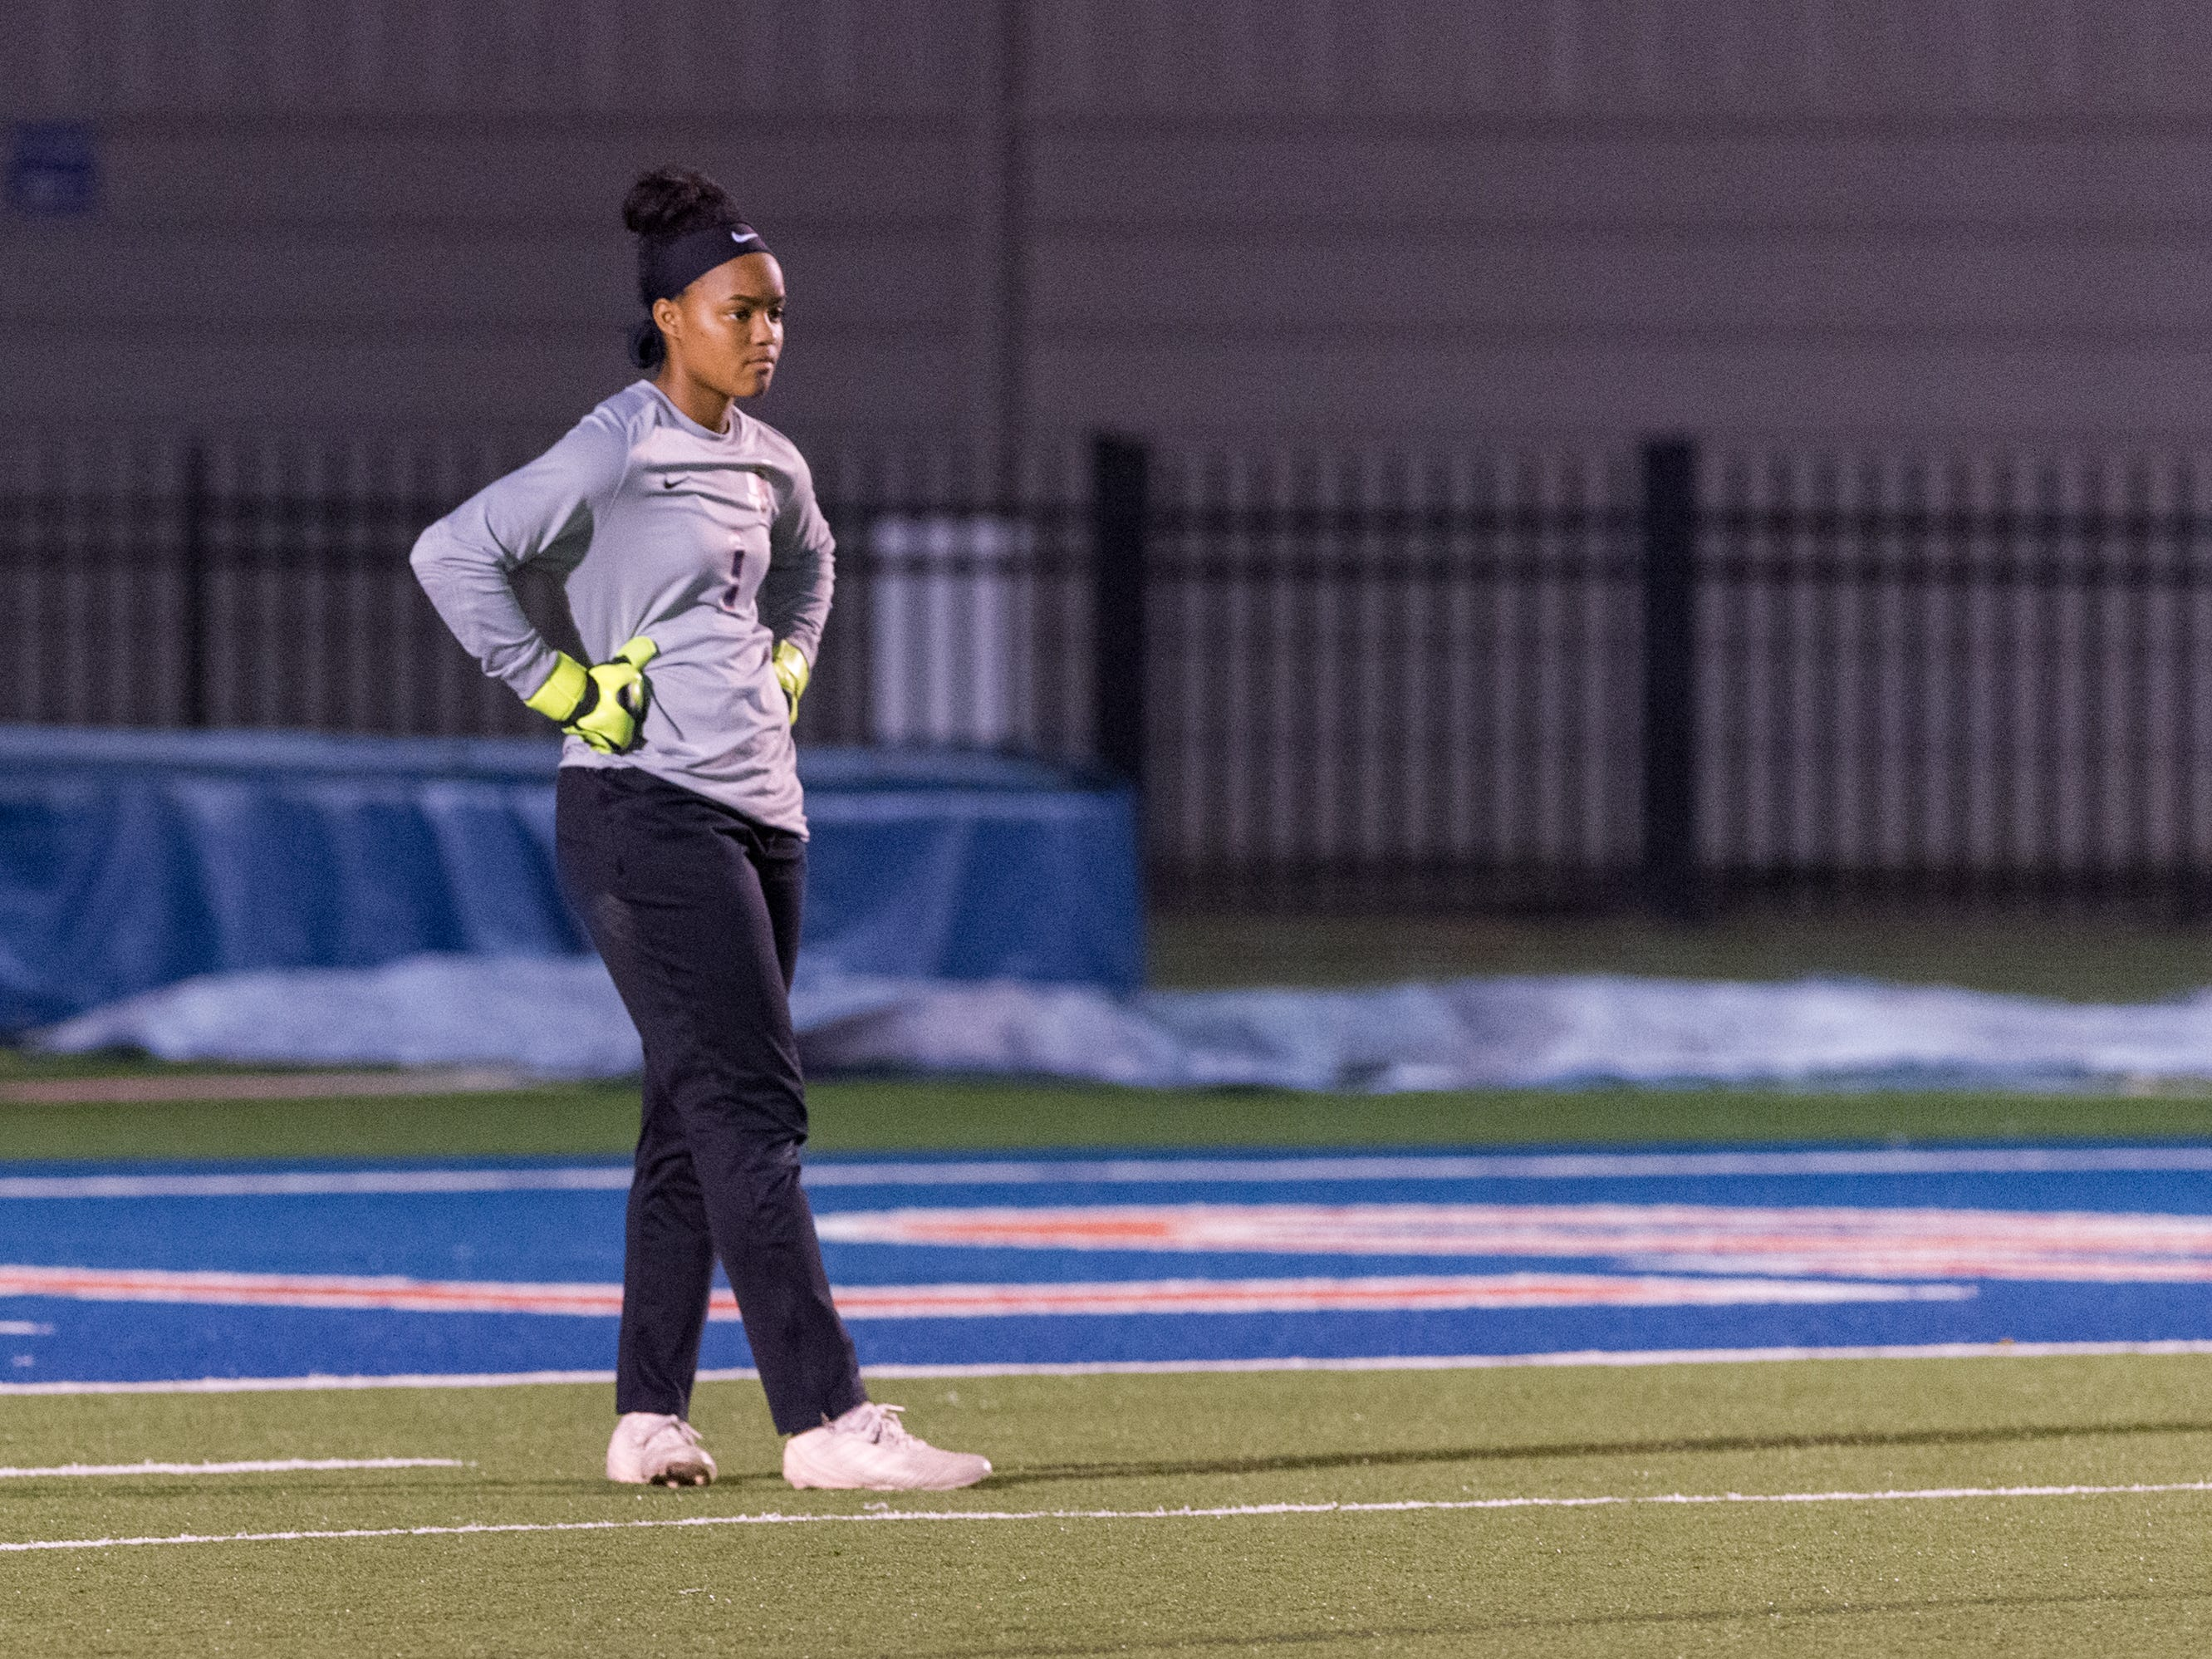 Keeper Lauren Starwood as Teurlings Catholic girls soccer takes down Holy Savior Menard in the quarterfinals of the LHSAA soccer playoffs. Monday, Feb. 11, 2019.